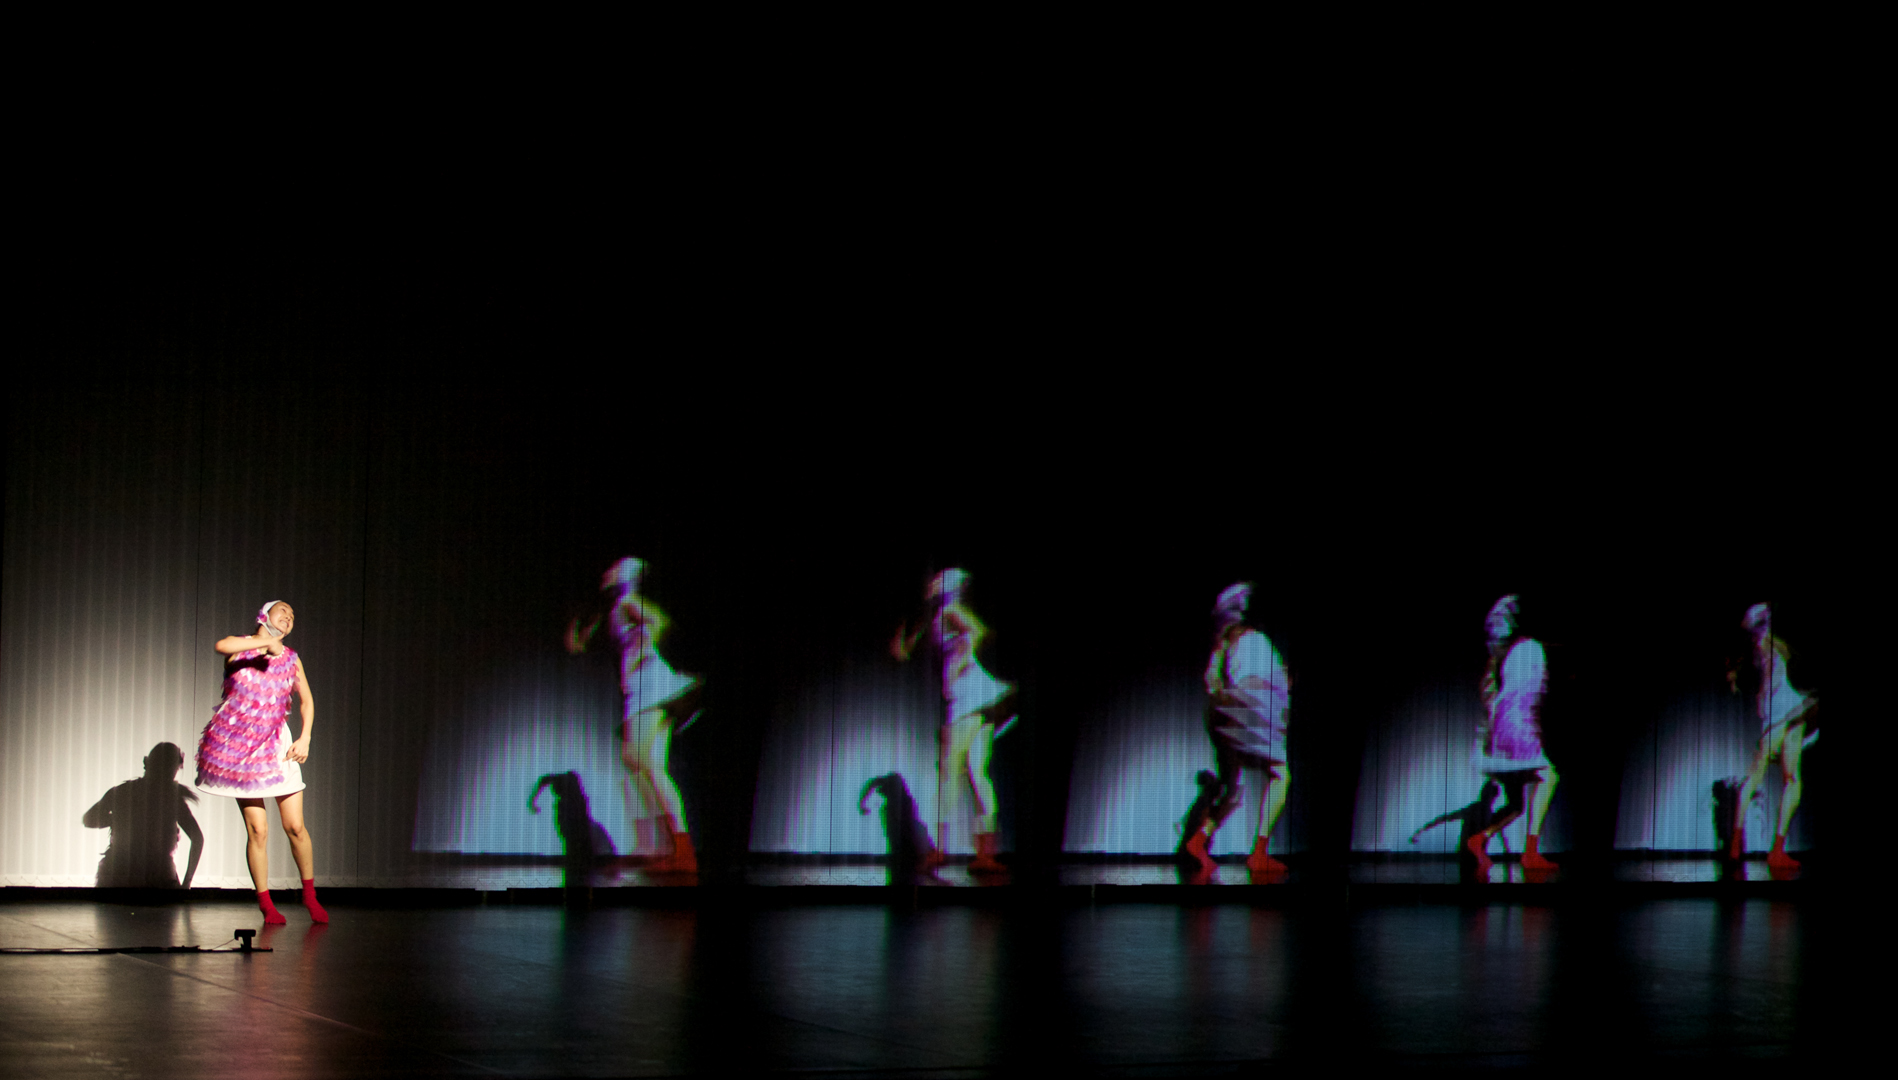 ©ISEA2019: 25th International Symposium on Electronic Art, Jeong-Seob Lee, Spatiotemporal Reconstruction of Dance Movement